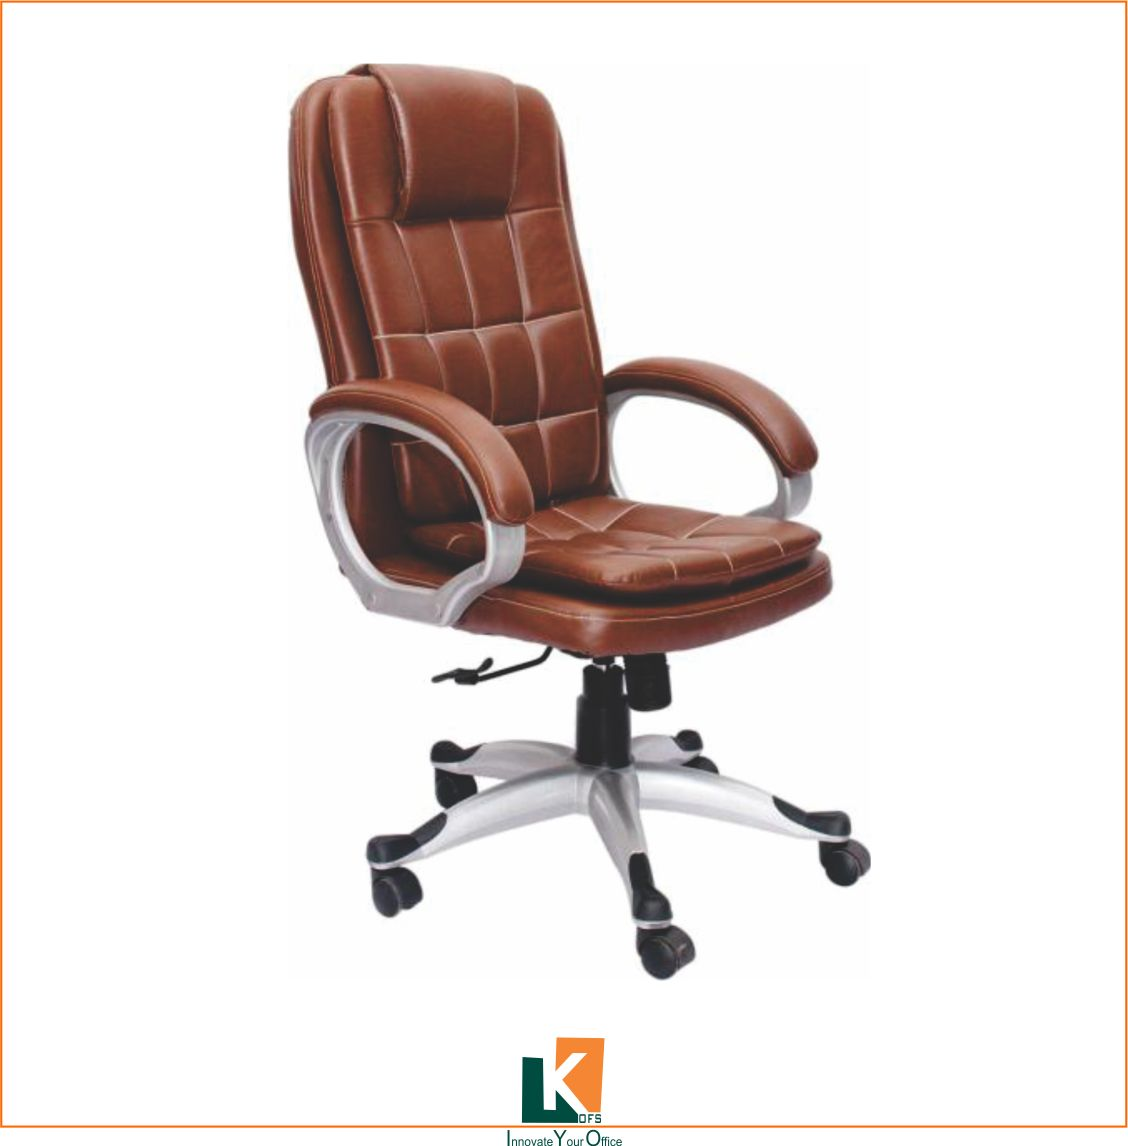 Desginer chair